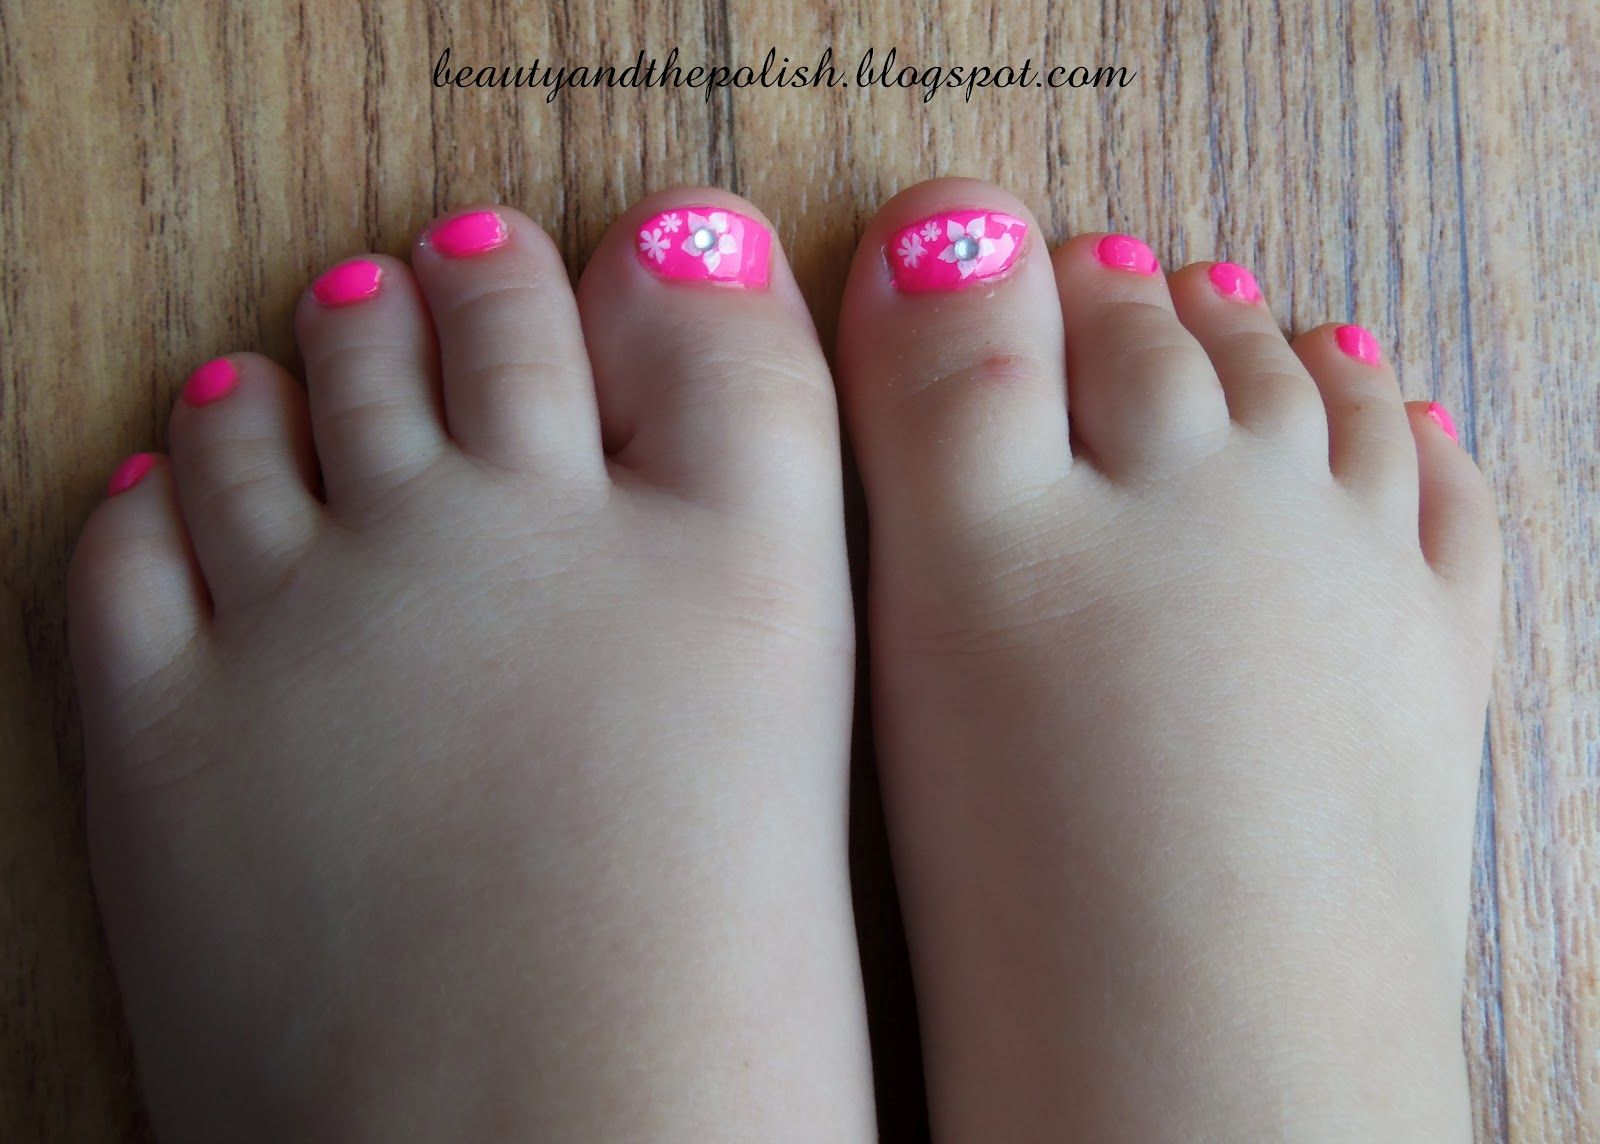 Girly nail art design toes beauty and the polish cute summer girly nail art design toes beauty and the polish cute summer pedicure prinsesfo Gallery